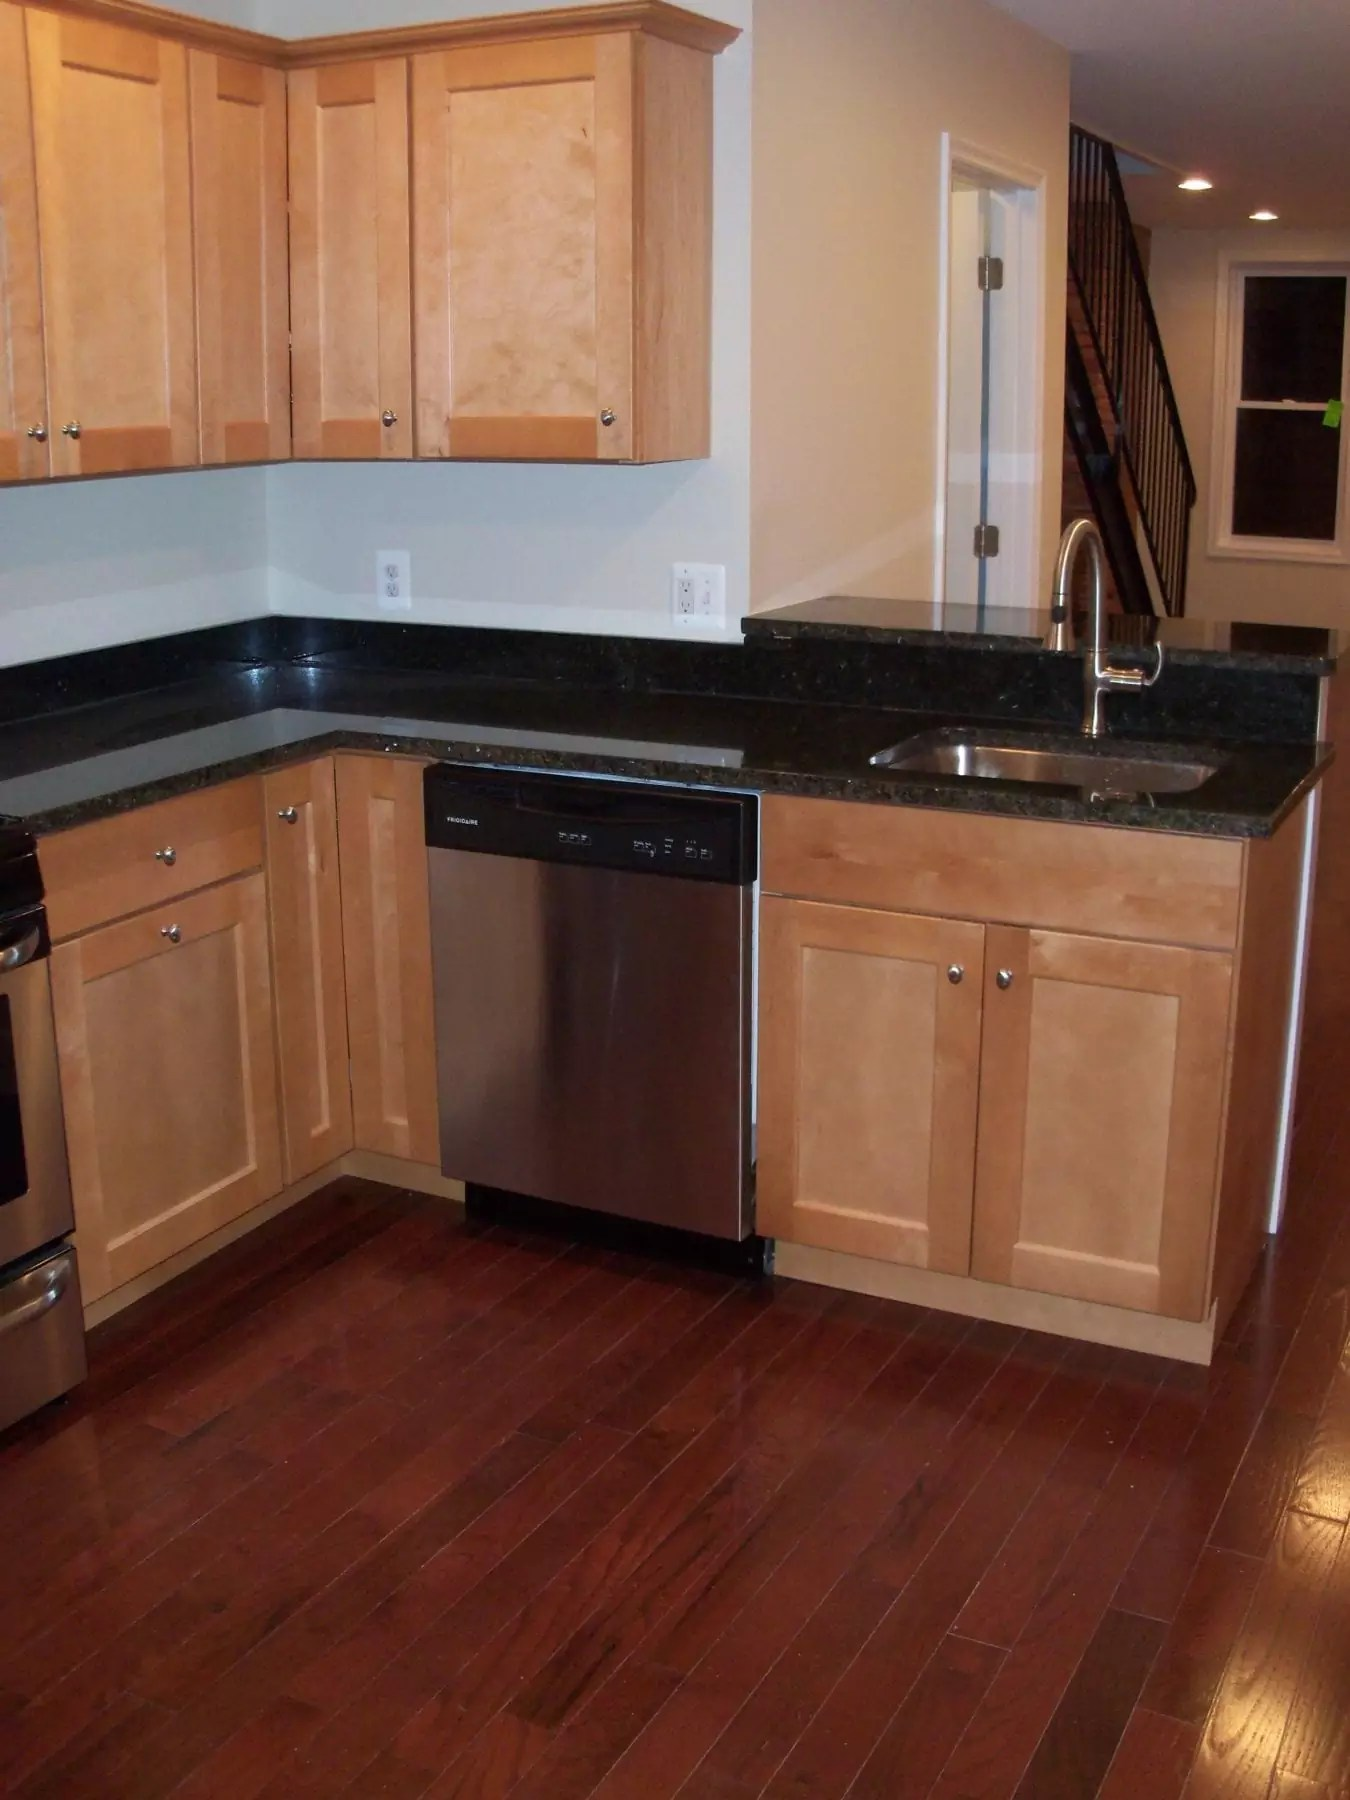 Kitchen Cabinets Baltimore House Renovation Federal Hill Md Trademark Construction